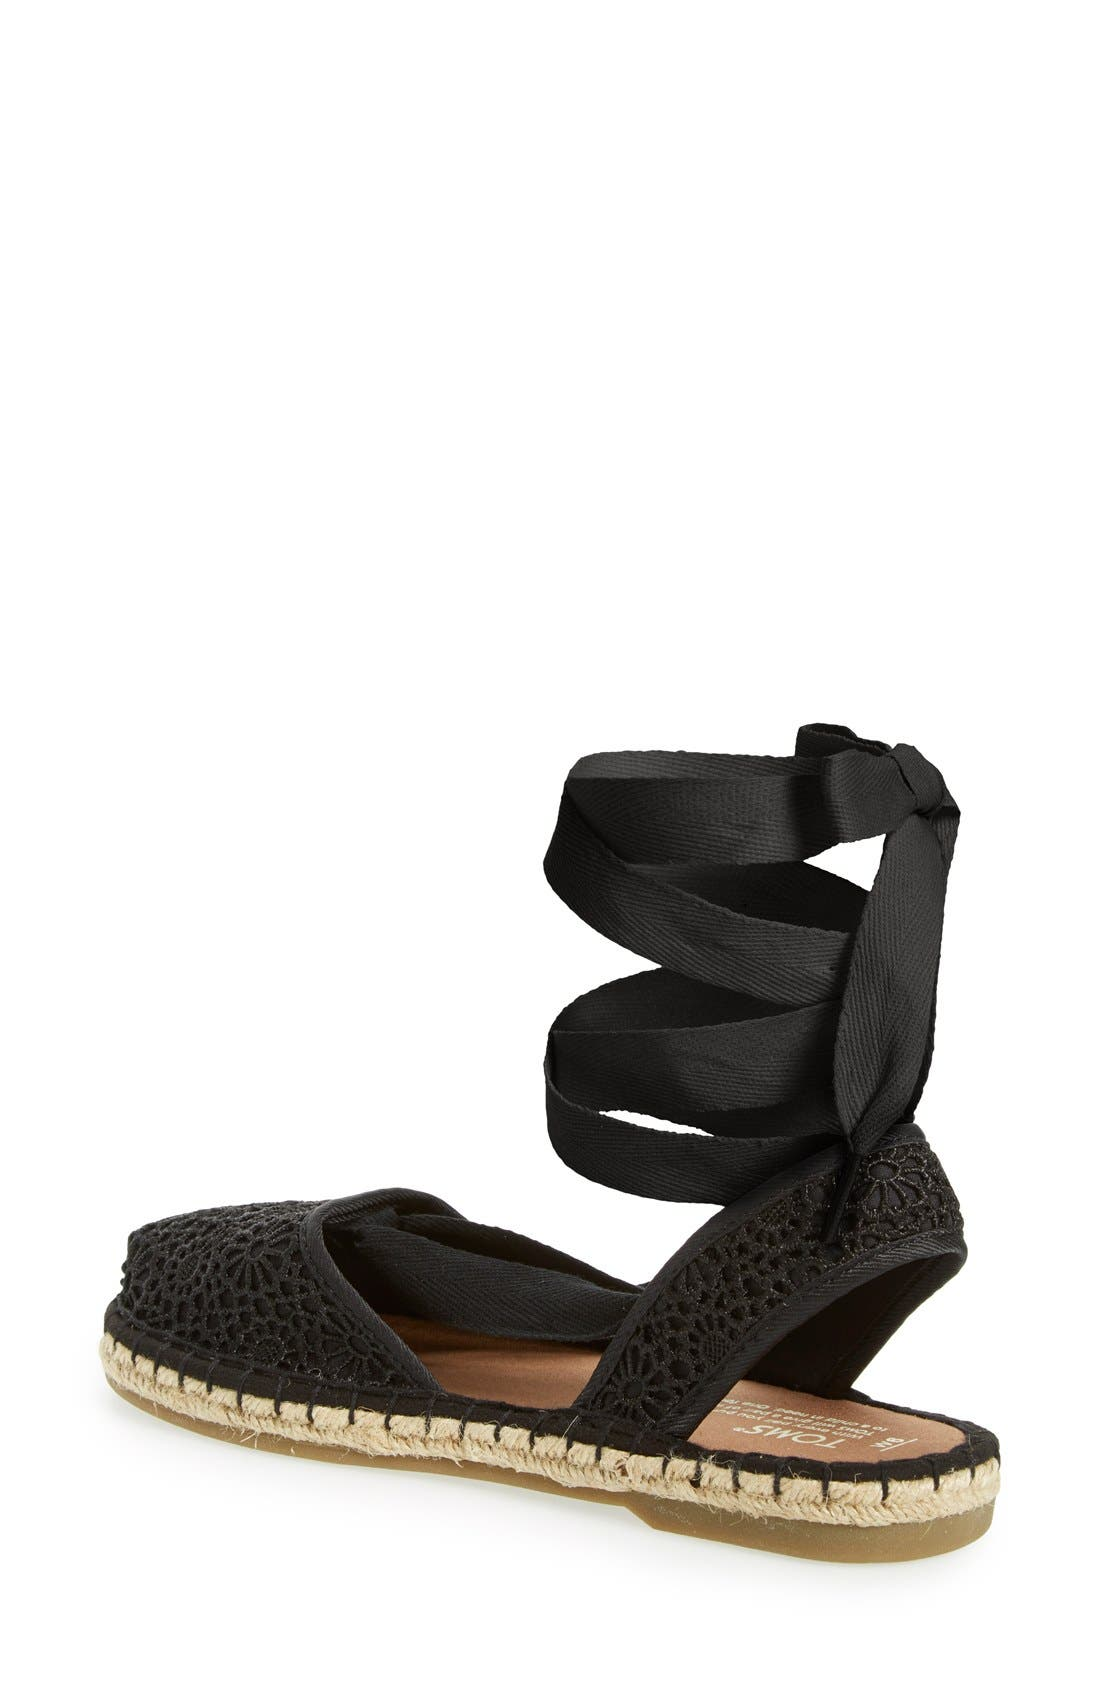 'Bella' Espadrille Sandal,                             Alternate thumbnail 2, color,                             Black Crochet